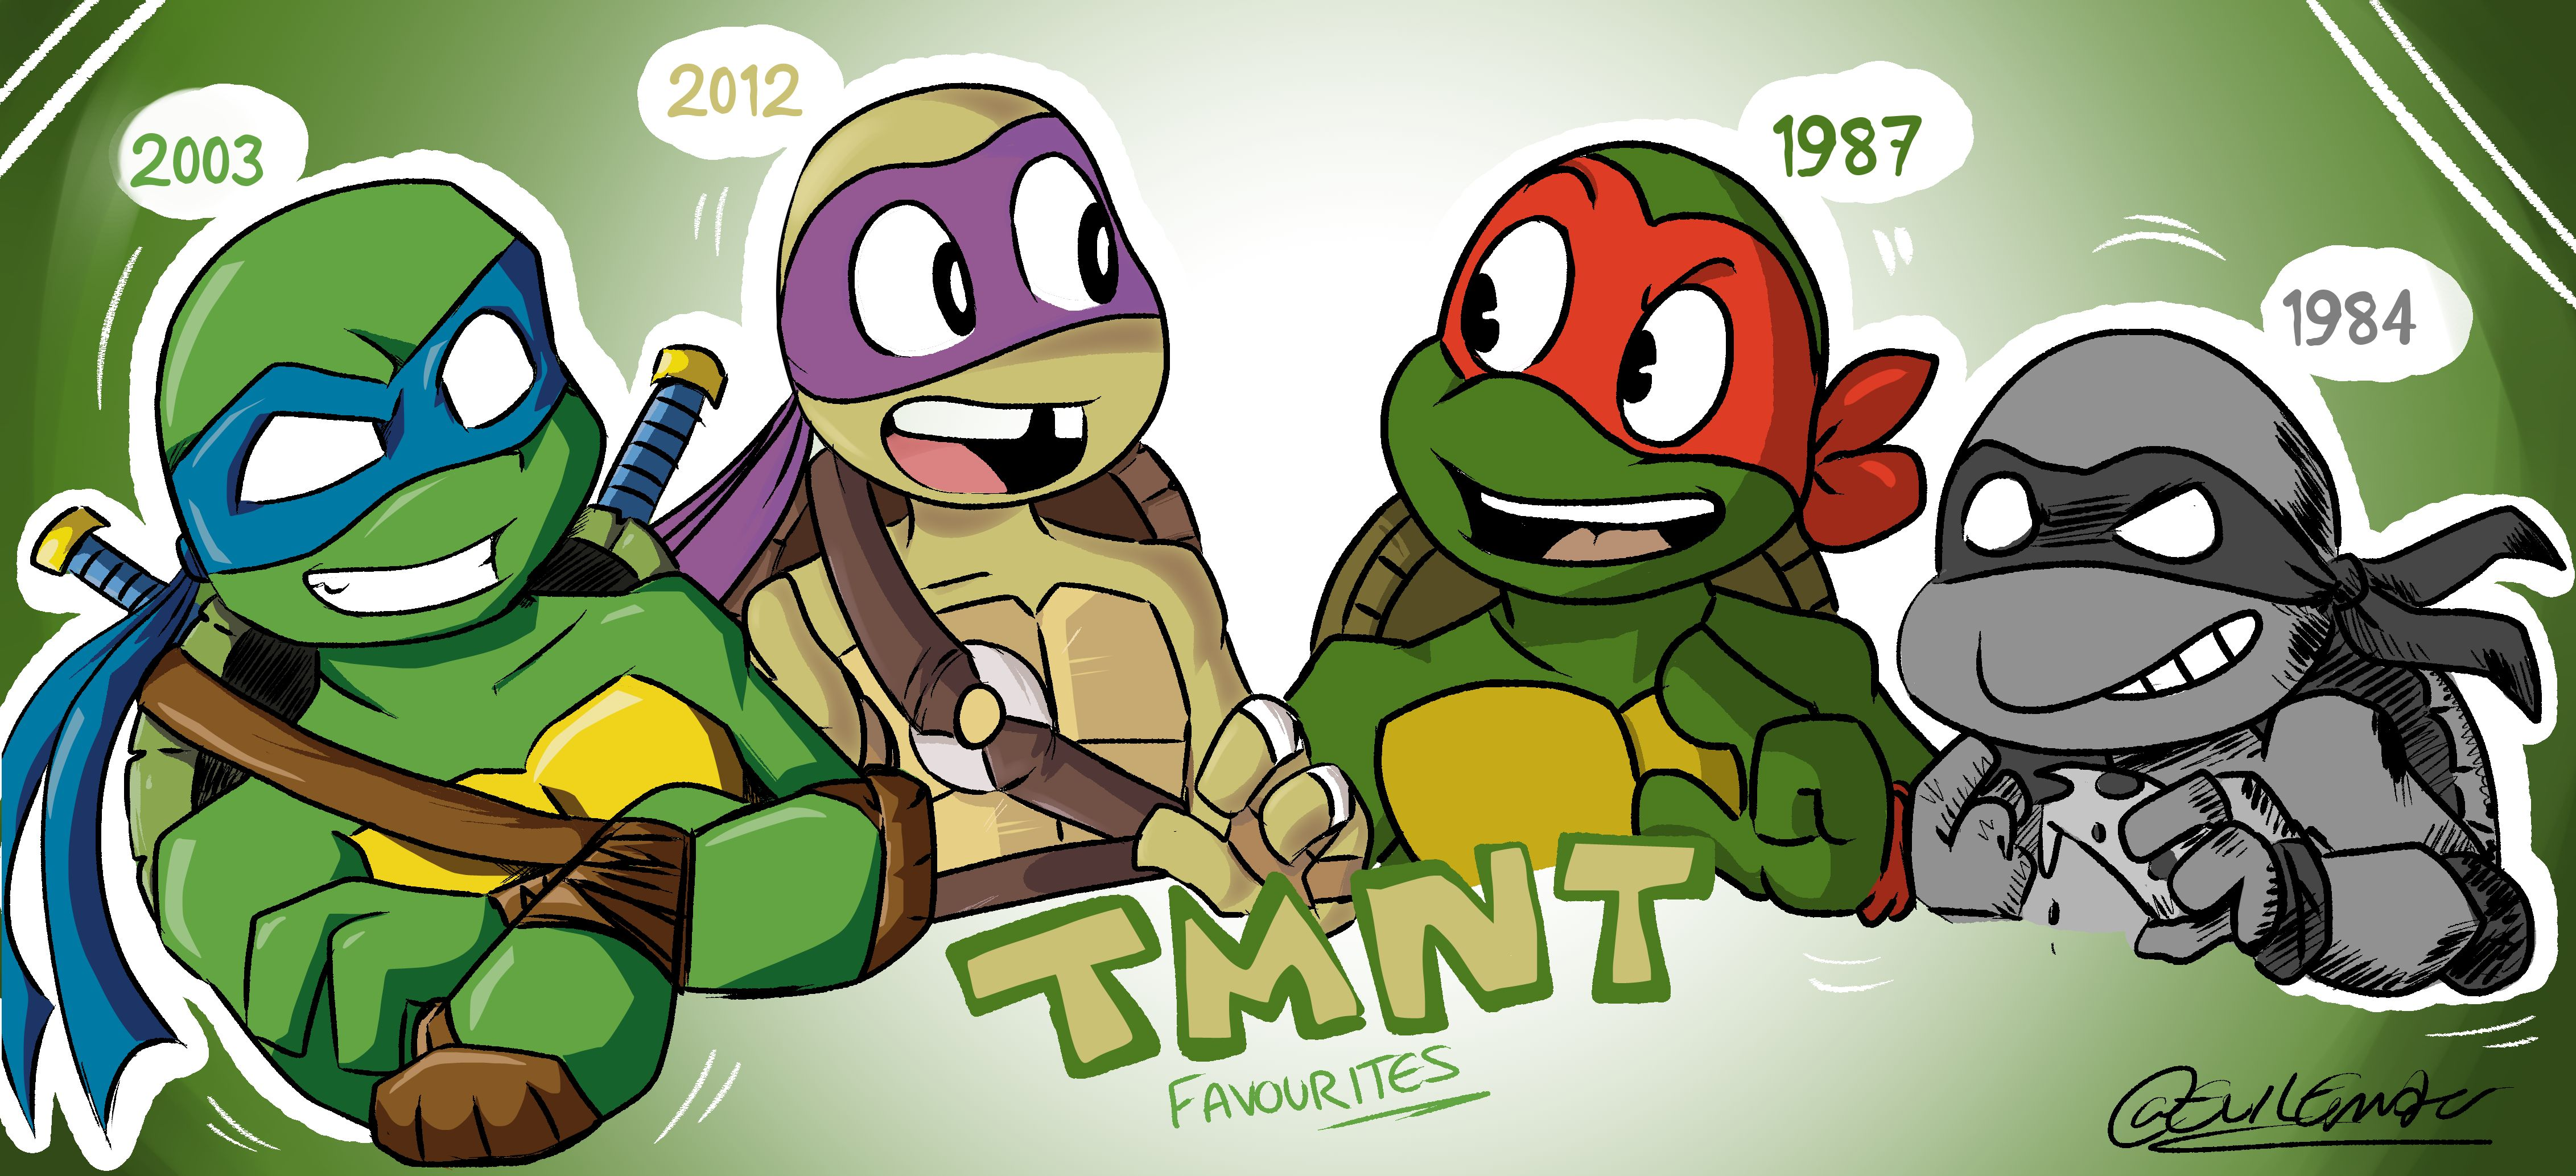 Favourite Turtles From The Ages!